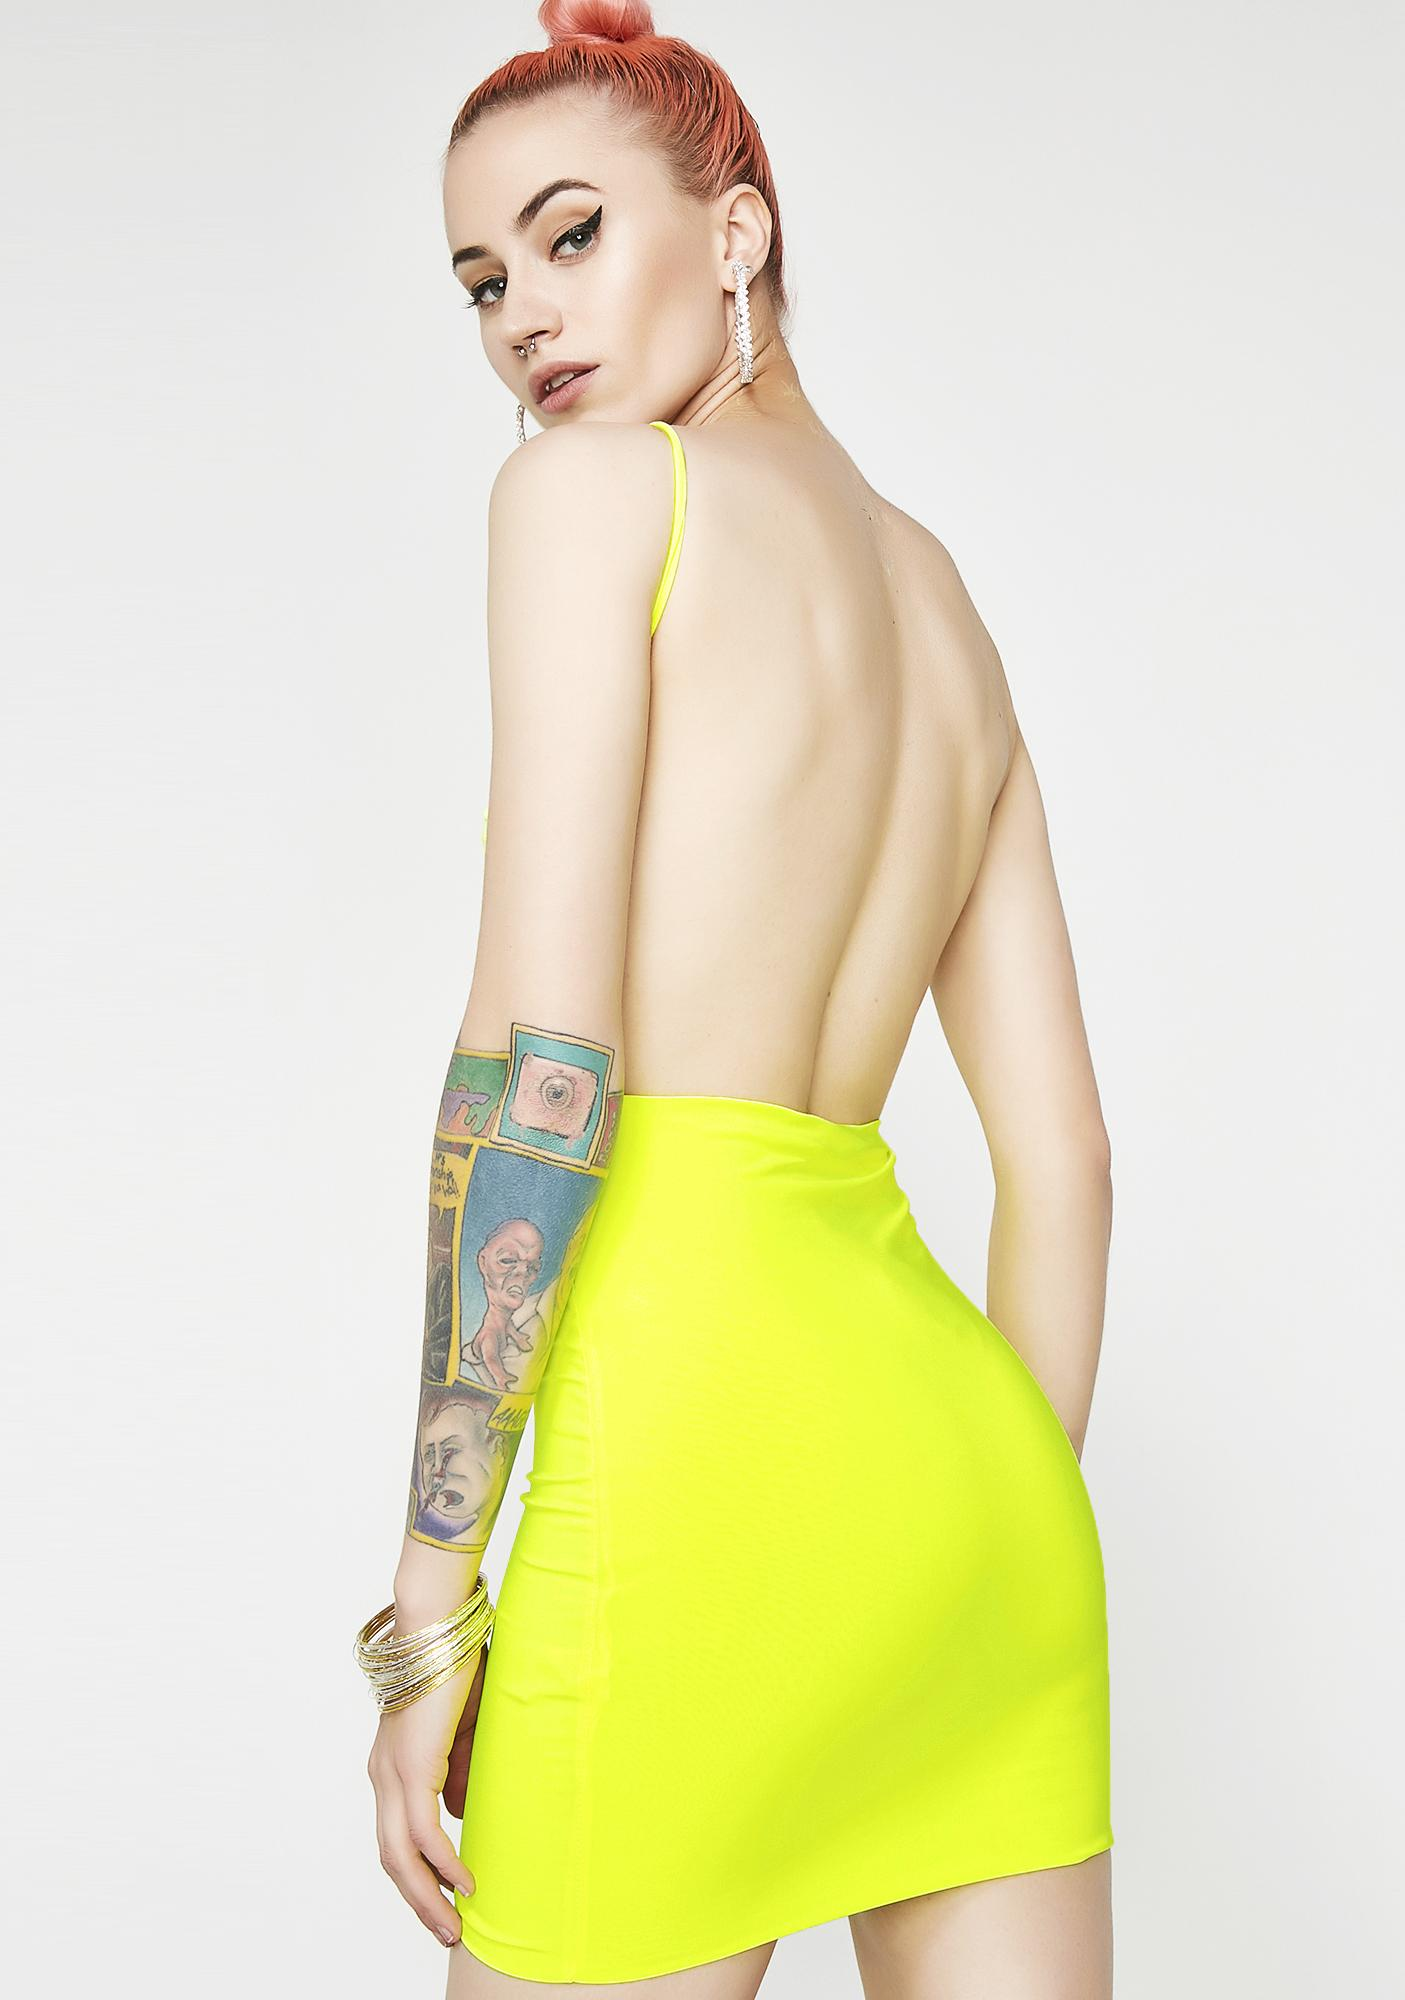 Sunny Adore You Backless Dress